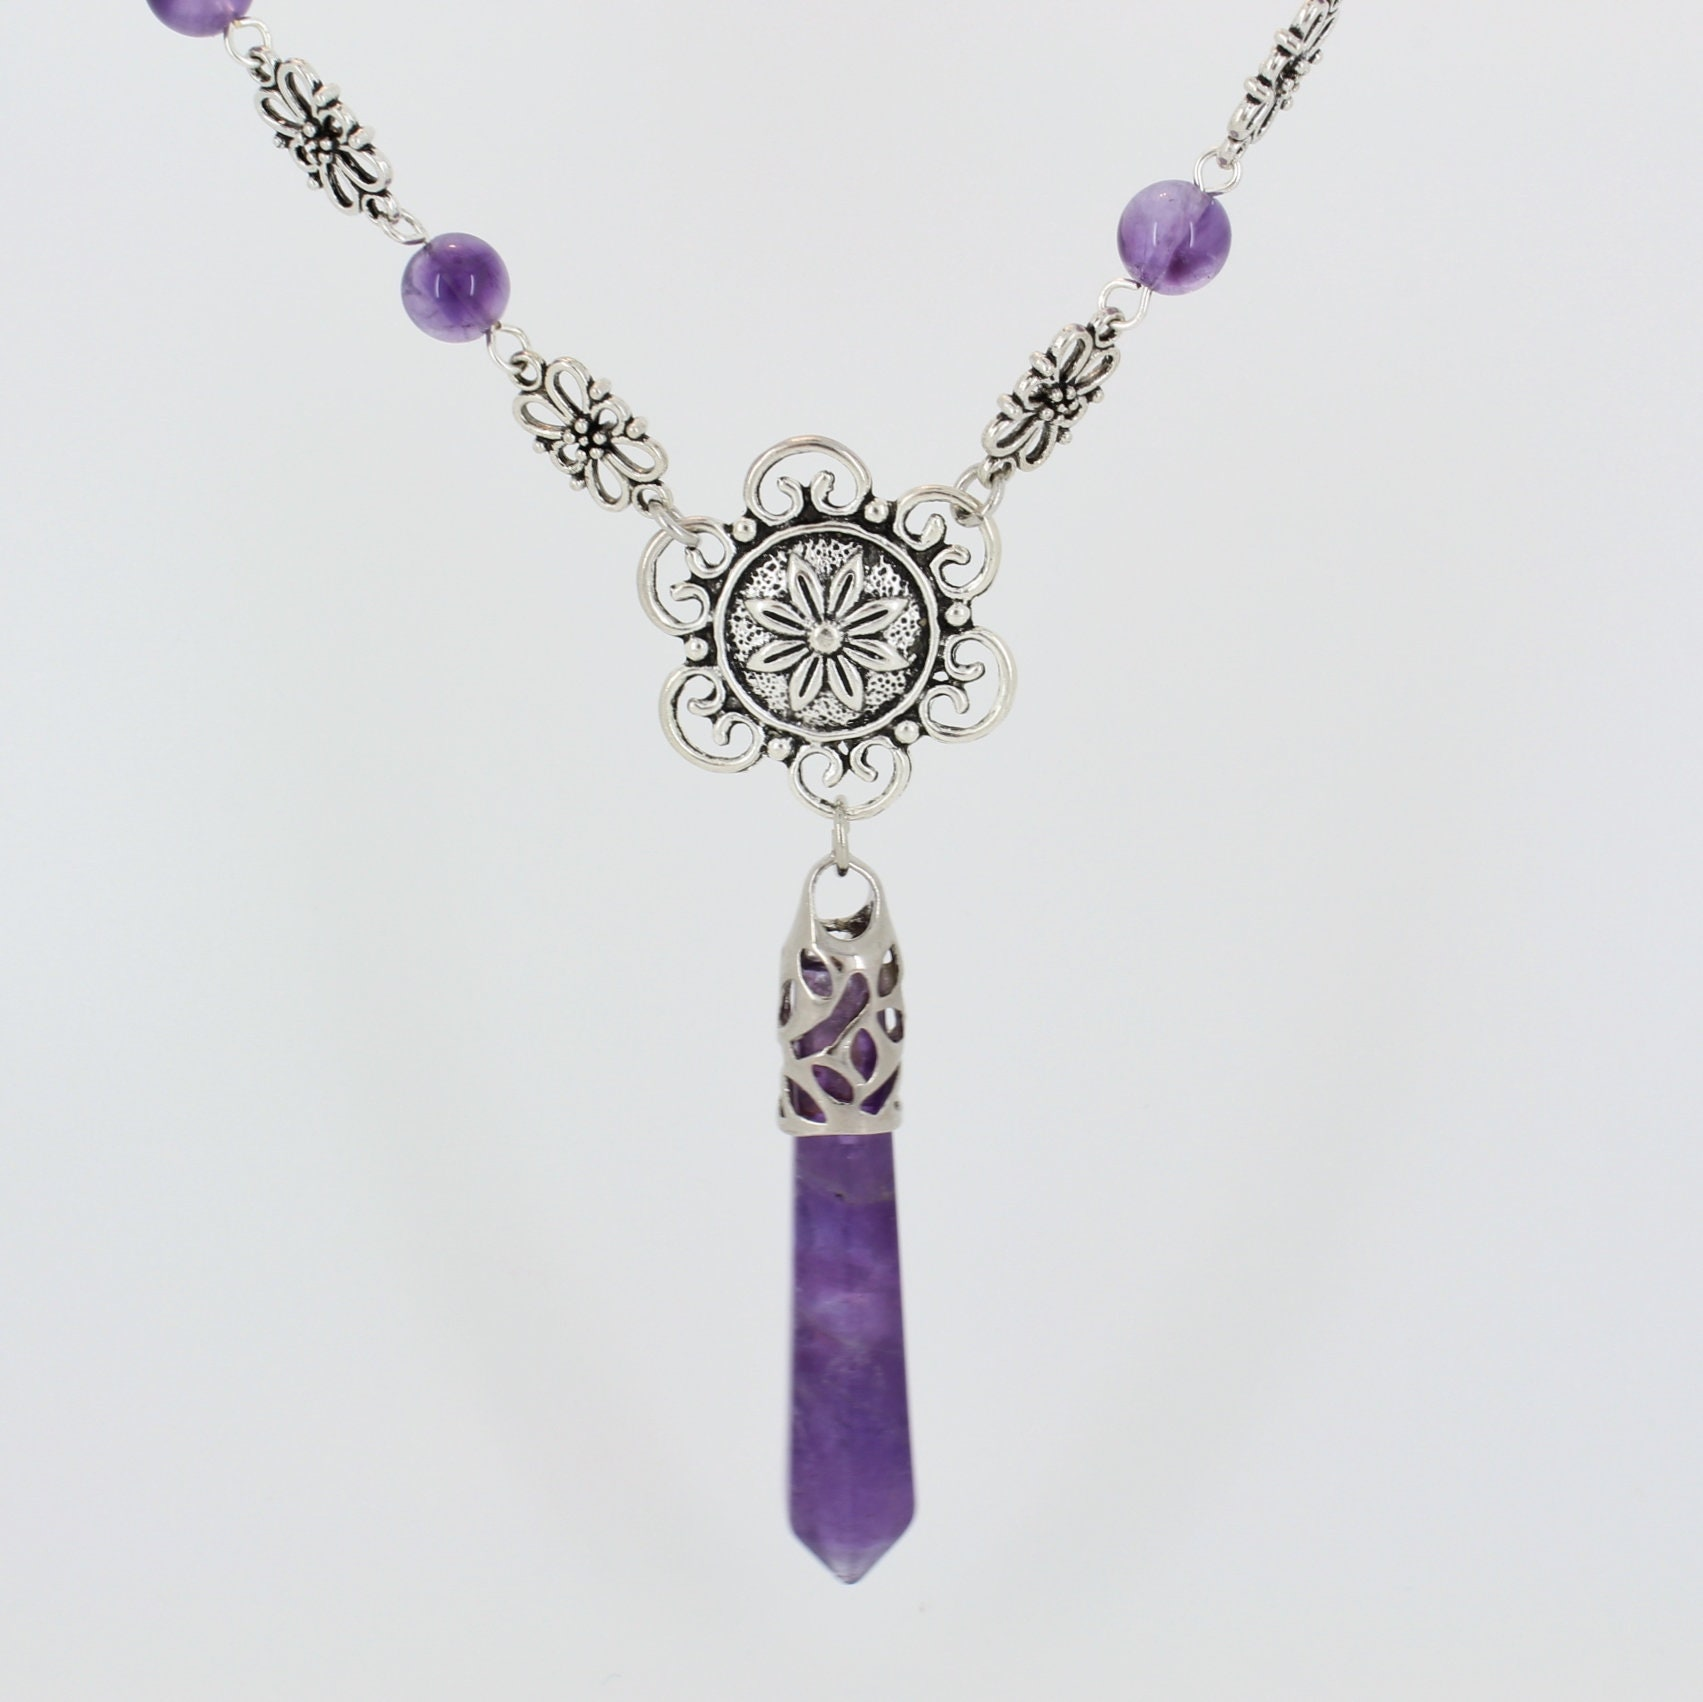 Genuine Amethyst Pendant Necklace - product images  of